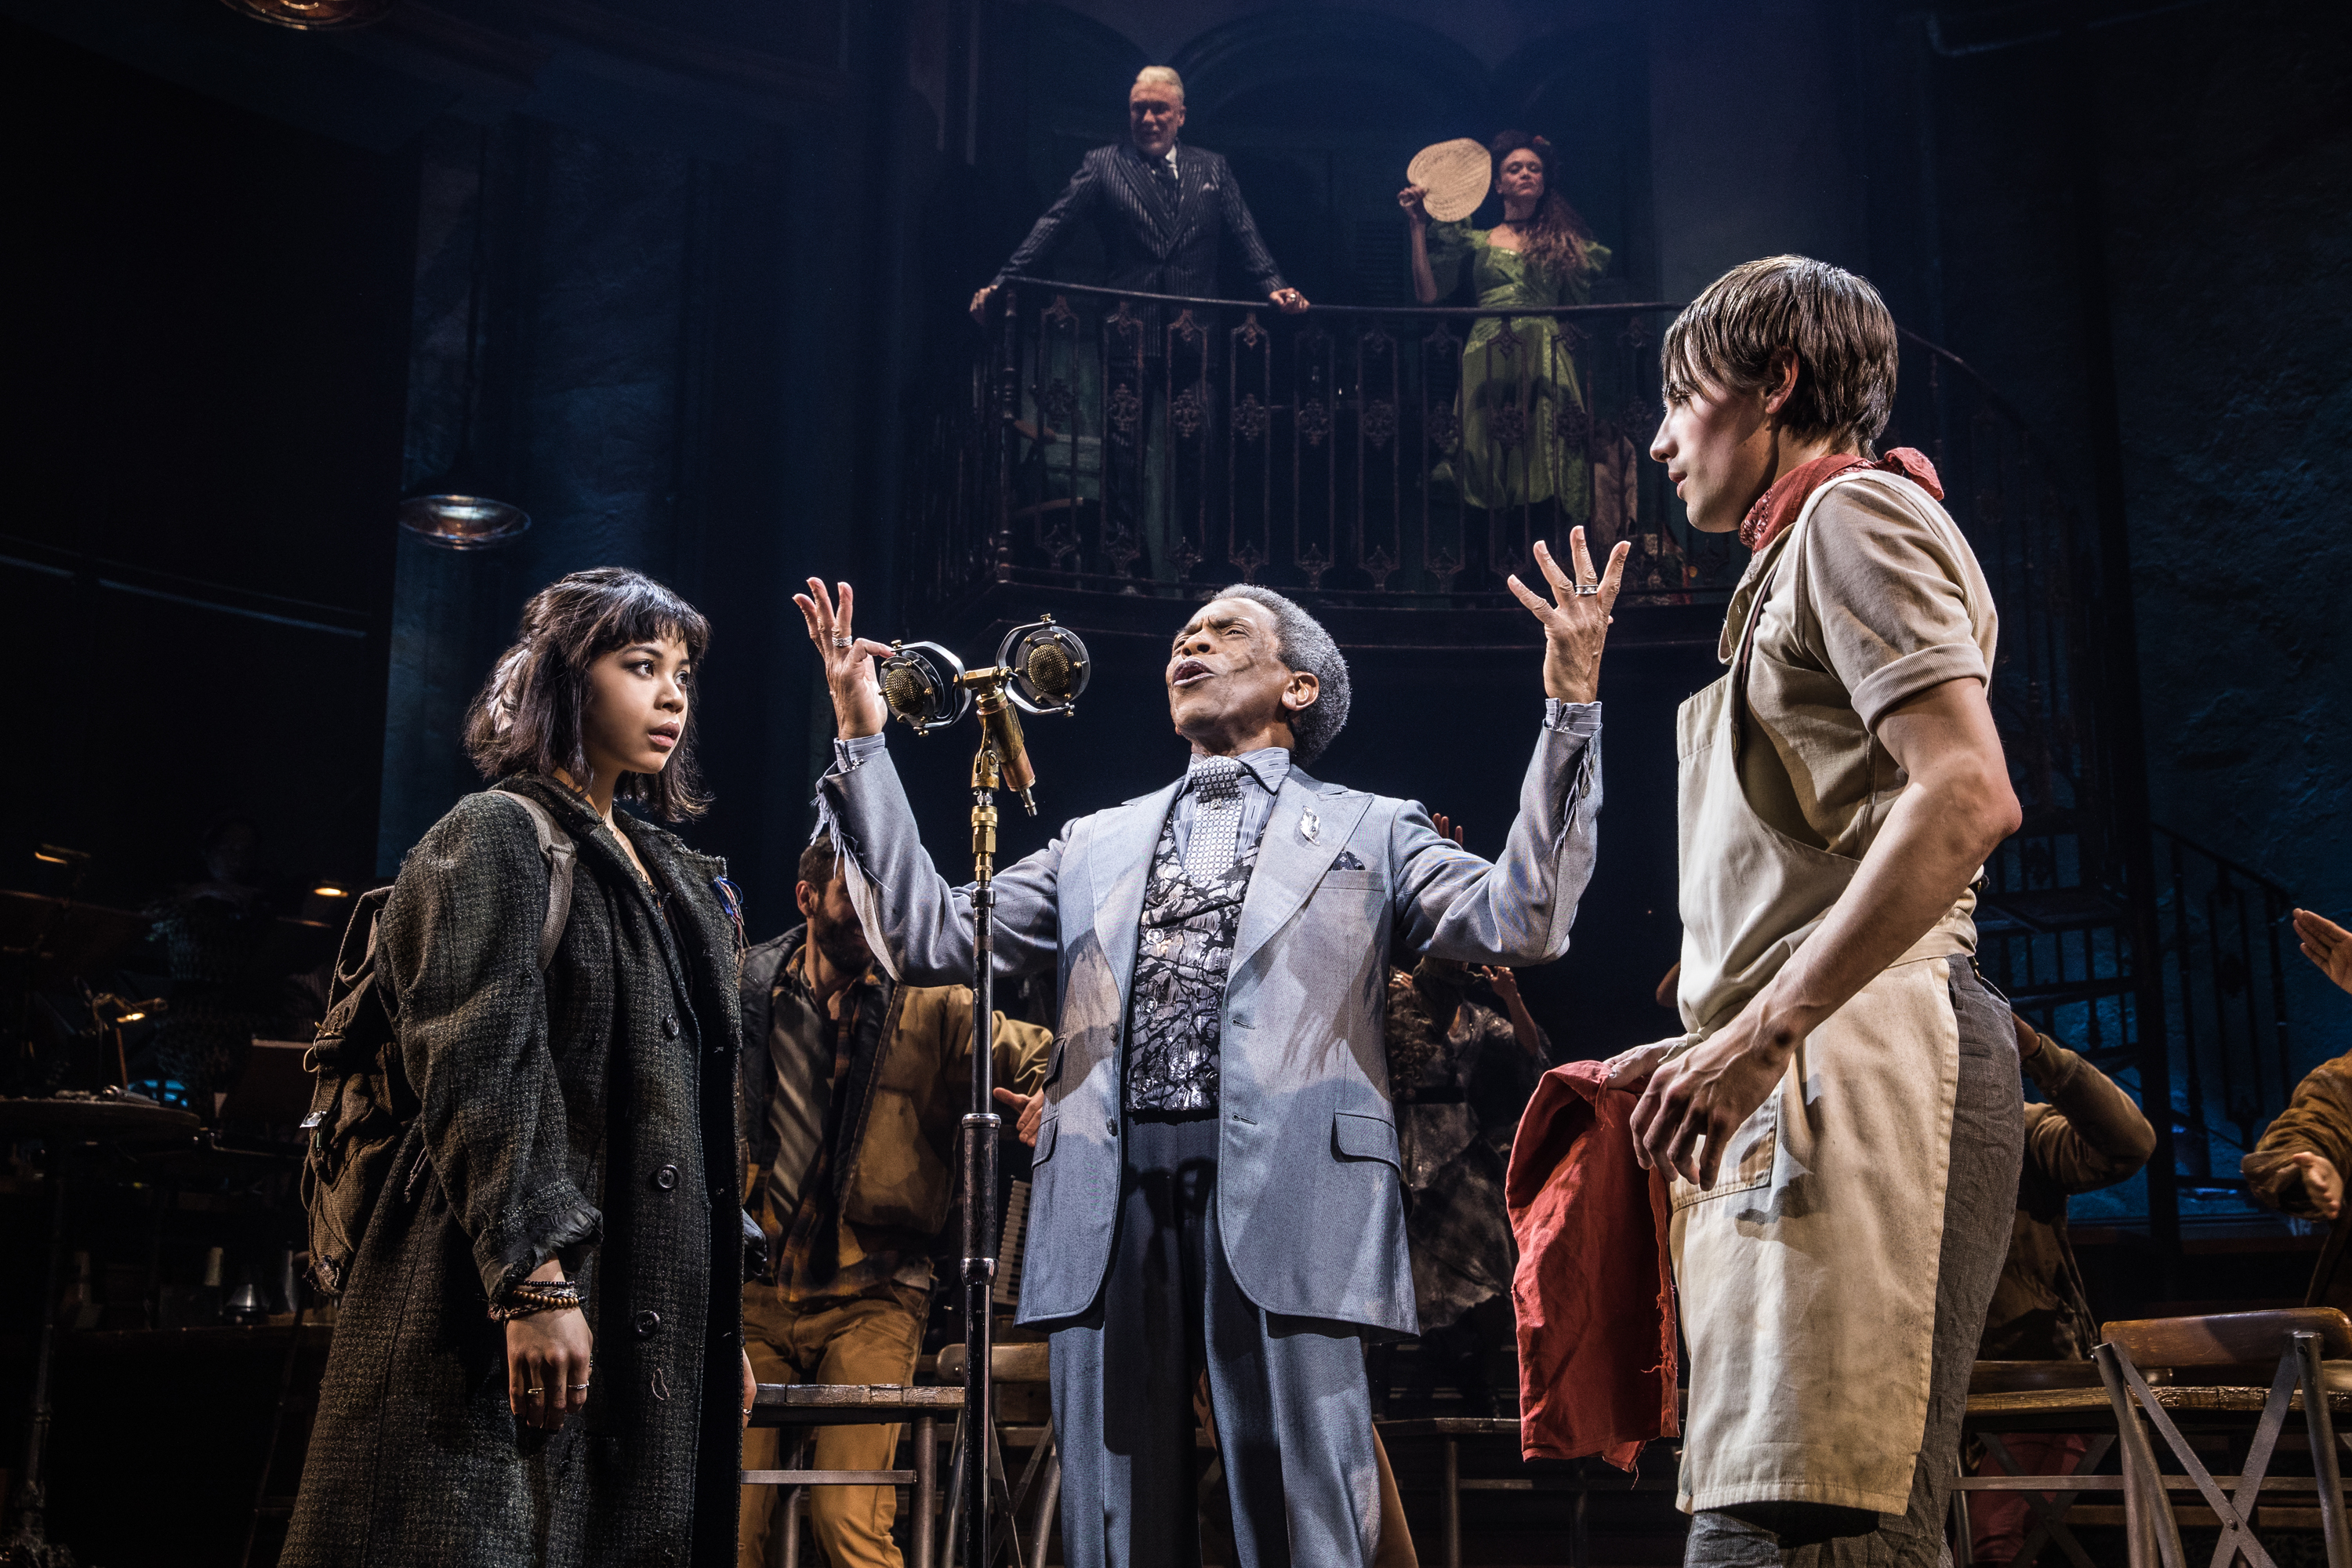 Immortal or Man: Which Hadestown Character Are You Most Alike?